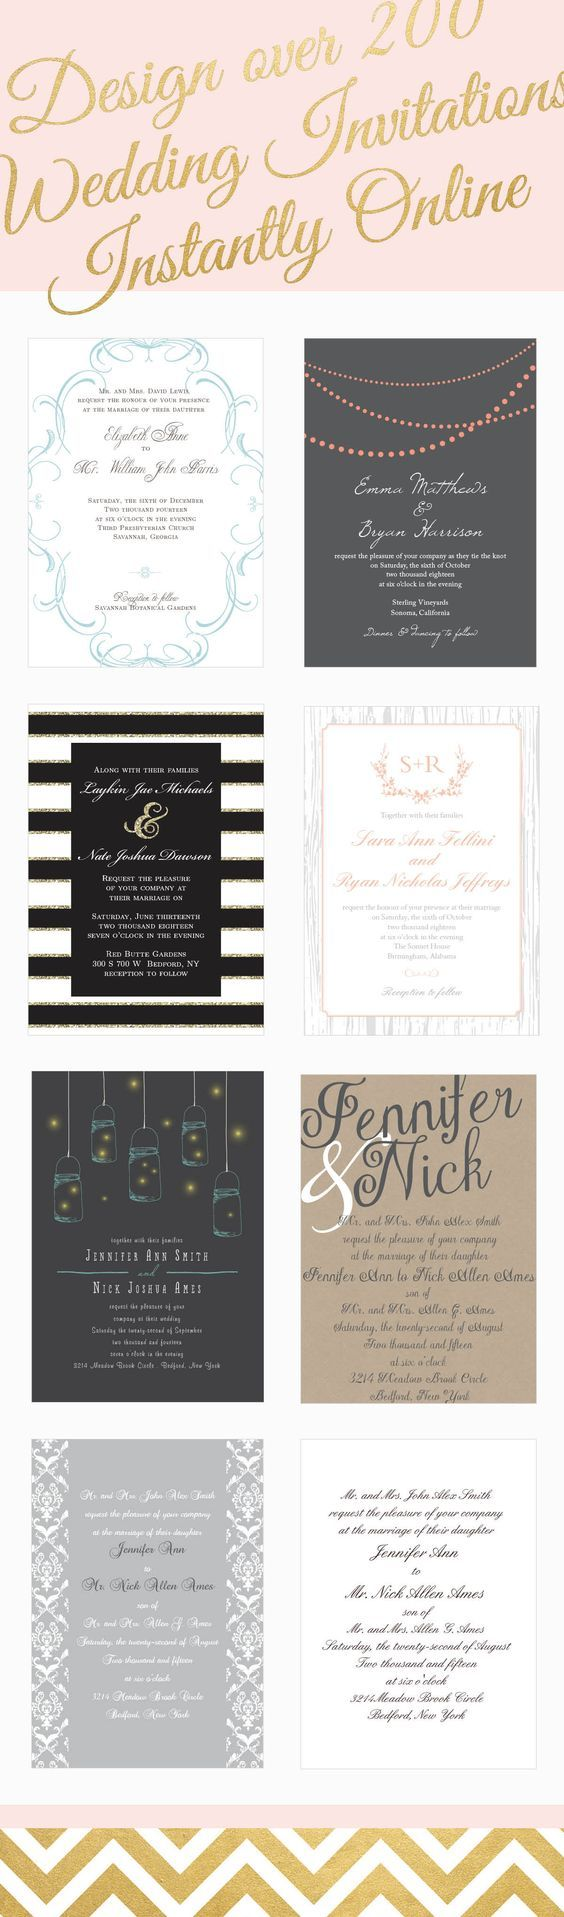 simple diy bridal shower invitations%0A Design your wedding invitations online today  Click here   http   www mydreamlines com         bridalshowerinvitations    weddinginvitations  weddi u